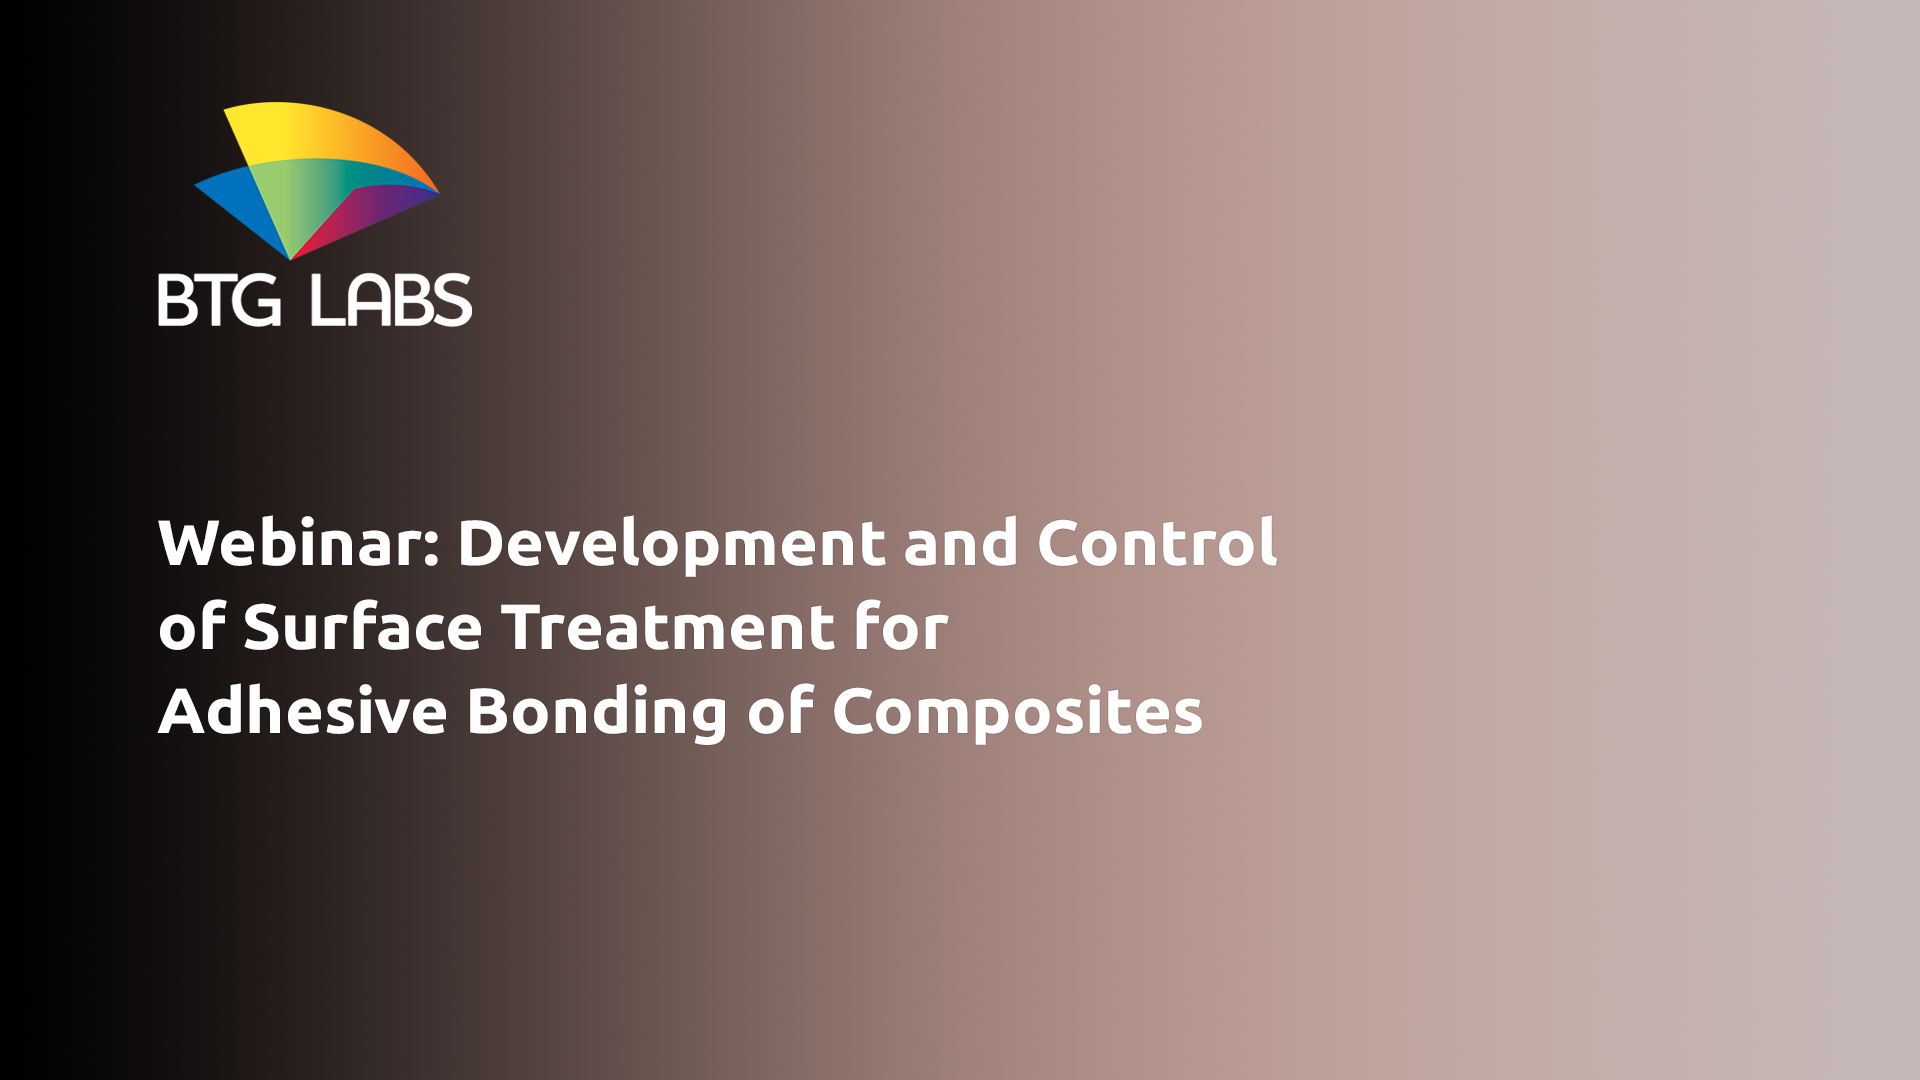 Development and control of surface treatments for adhesive bonding of composites